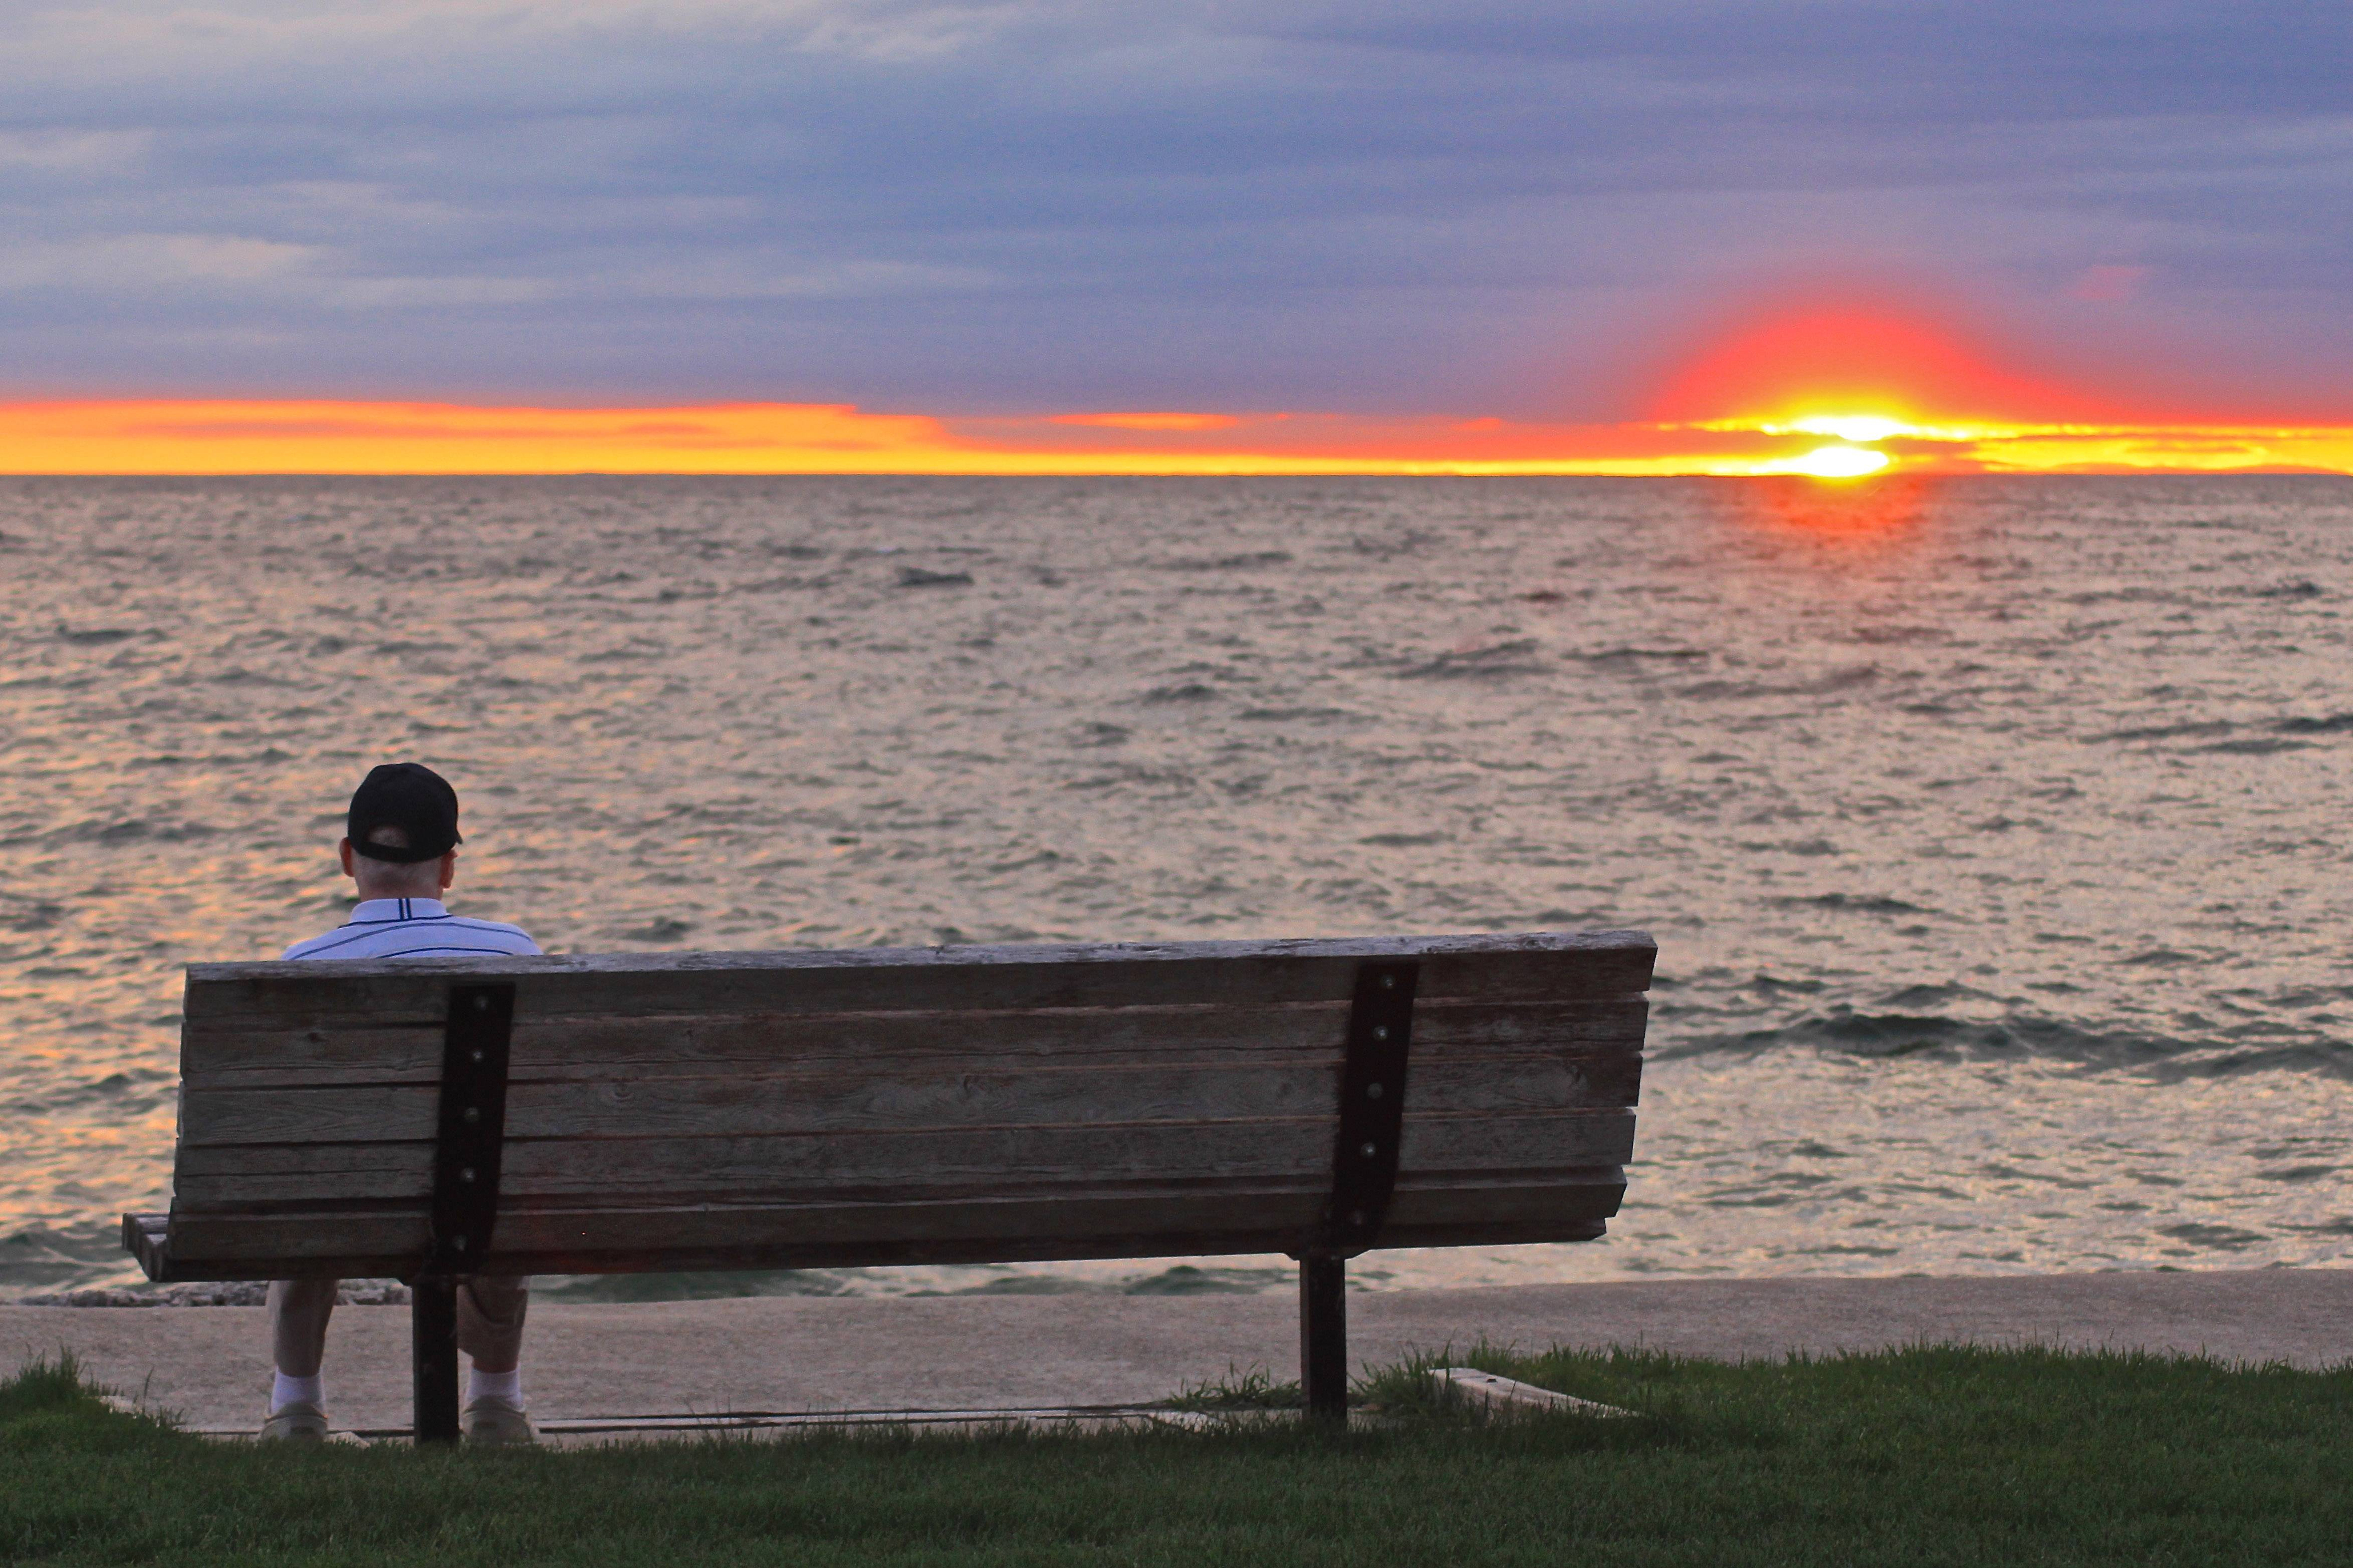 An elderly man sits alone on a bench and enjoys the sunset in Sister Bay, Wisconsin on May 8.